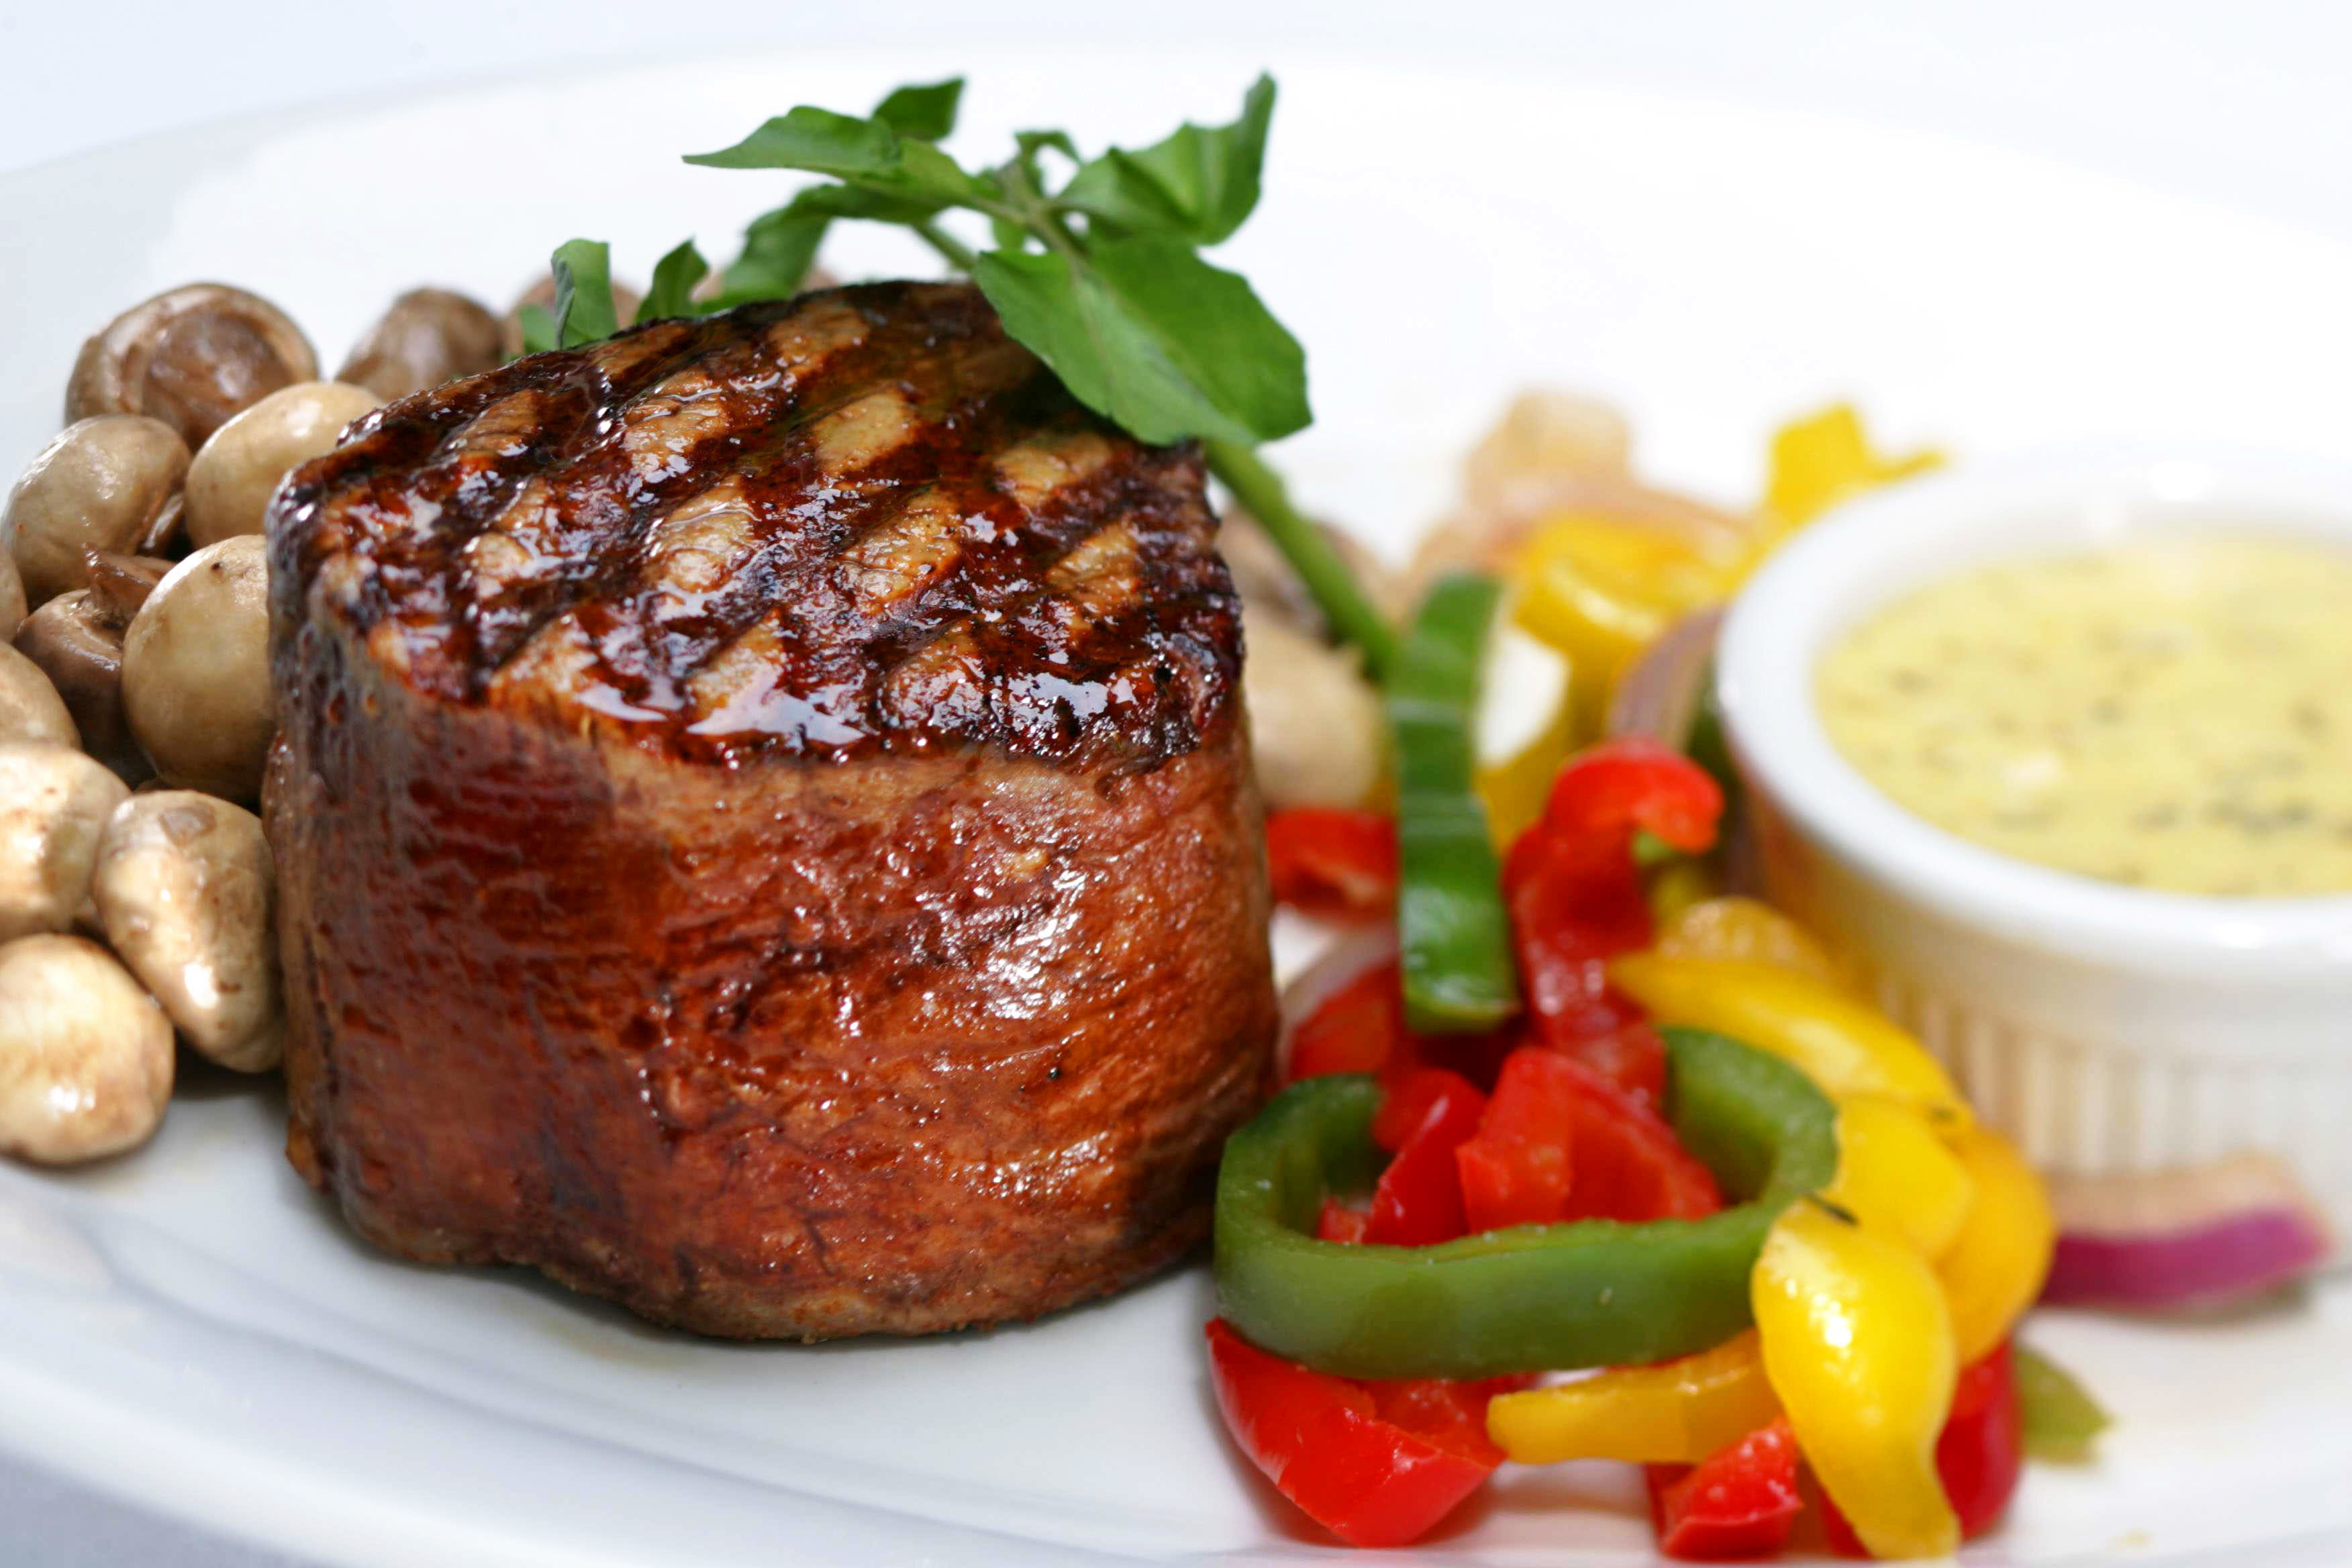 Dining Eat Resort food plate meat steak garnish cuisine pork chop beef tenderloin rib eye steak vegetable